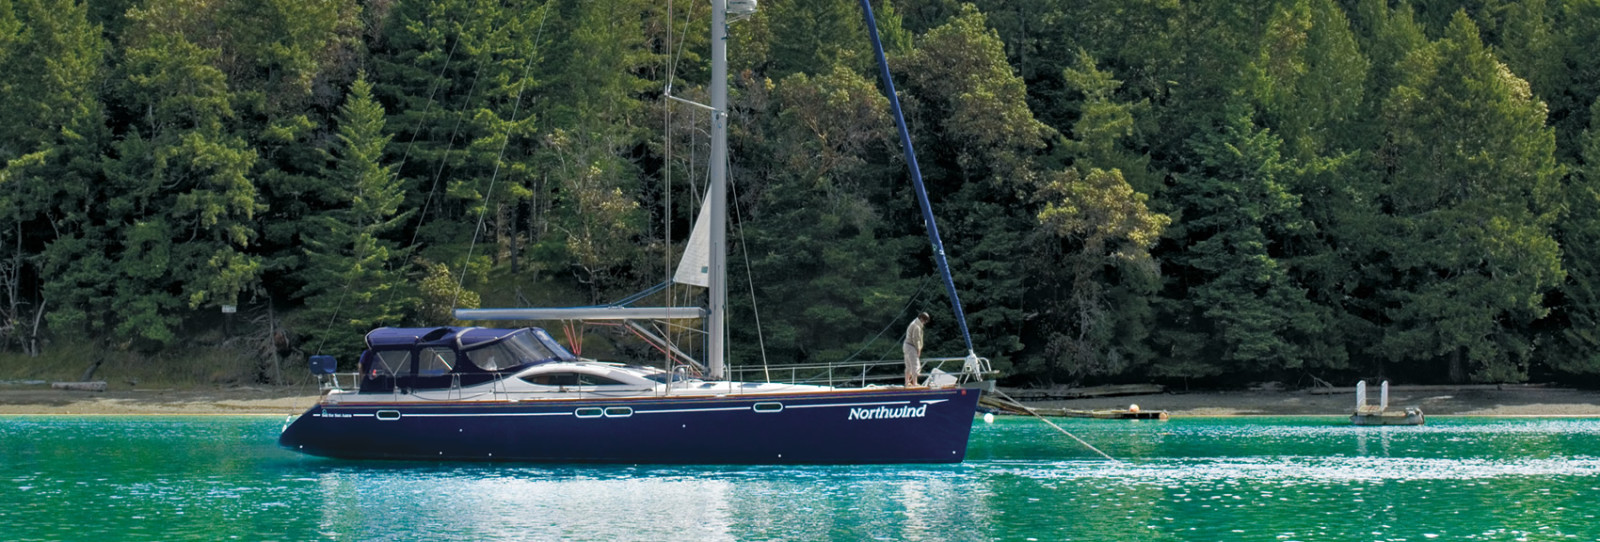 sailing the san juan islands aboard Northwind